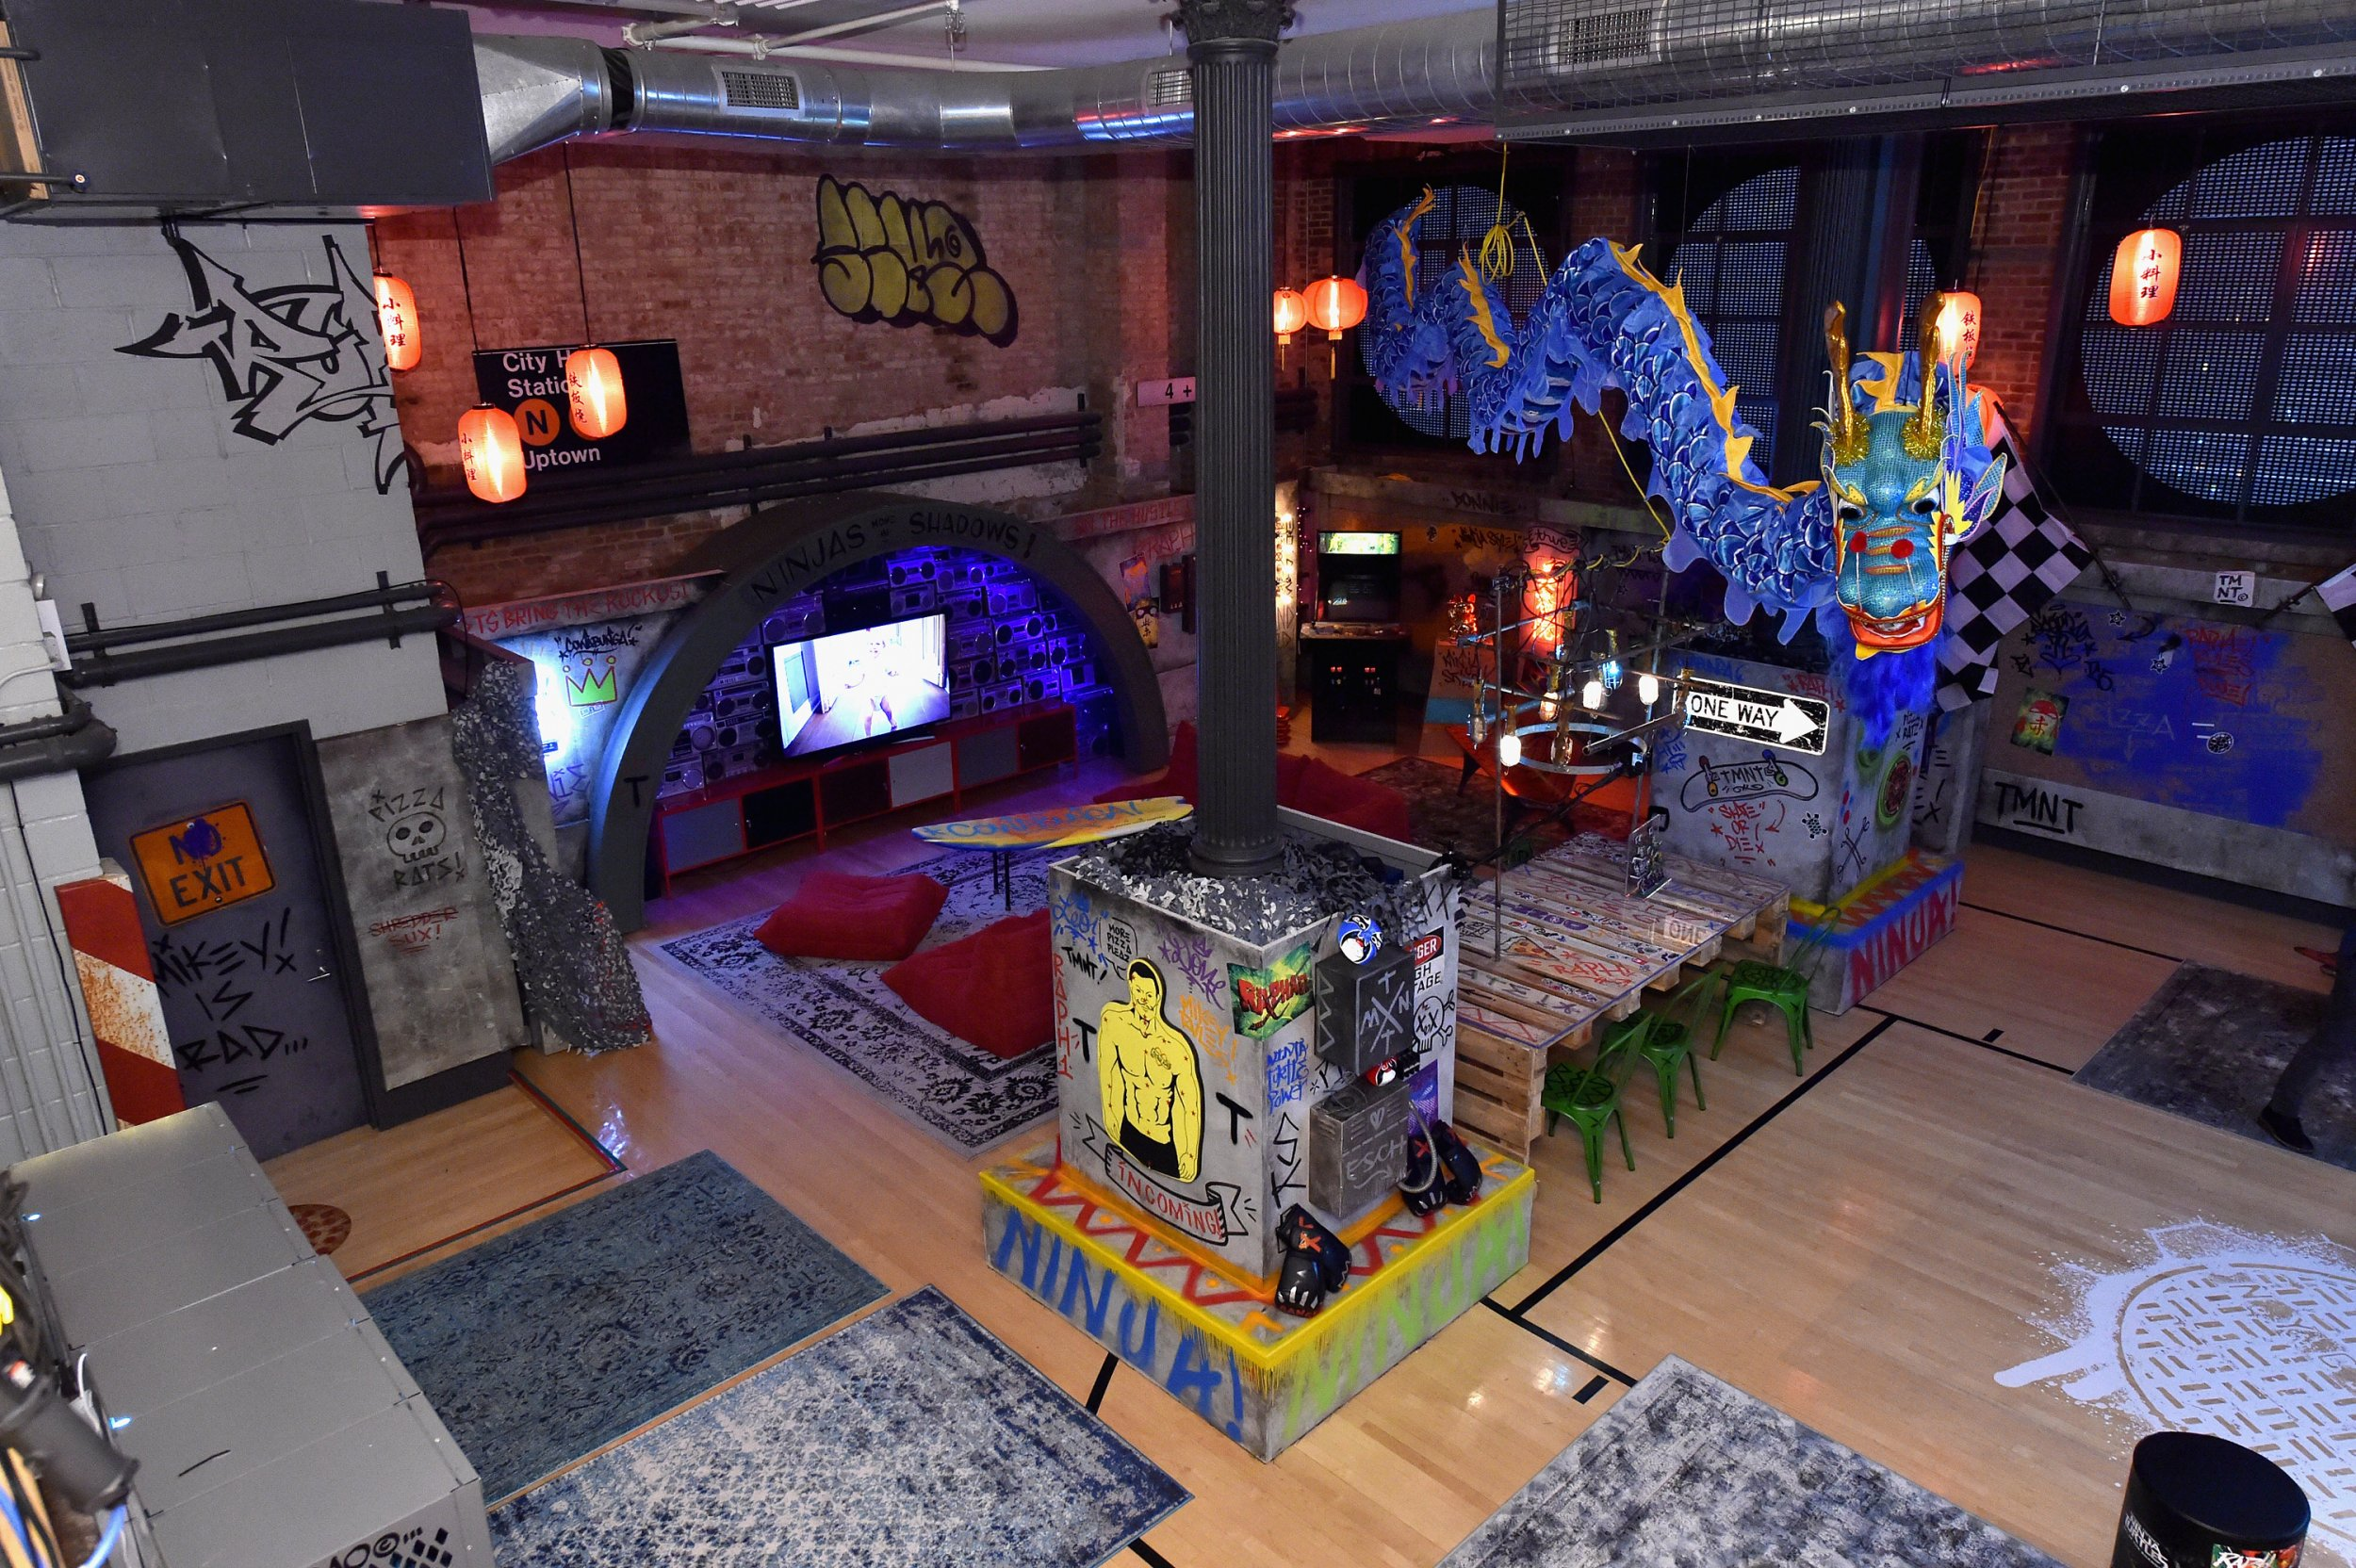 You can stay in this Teenage Mutant Ninja Turtle themed lair for just £7